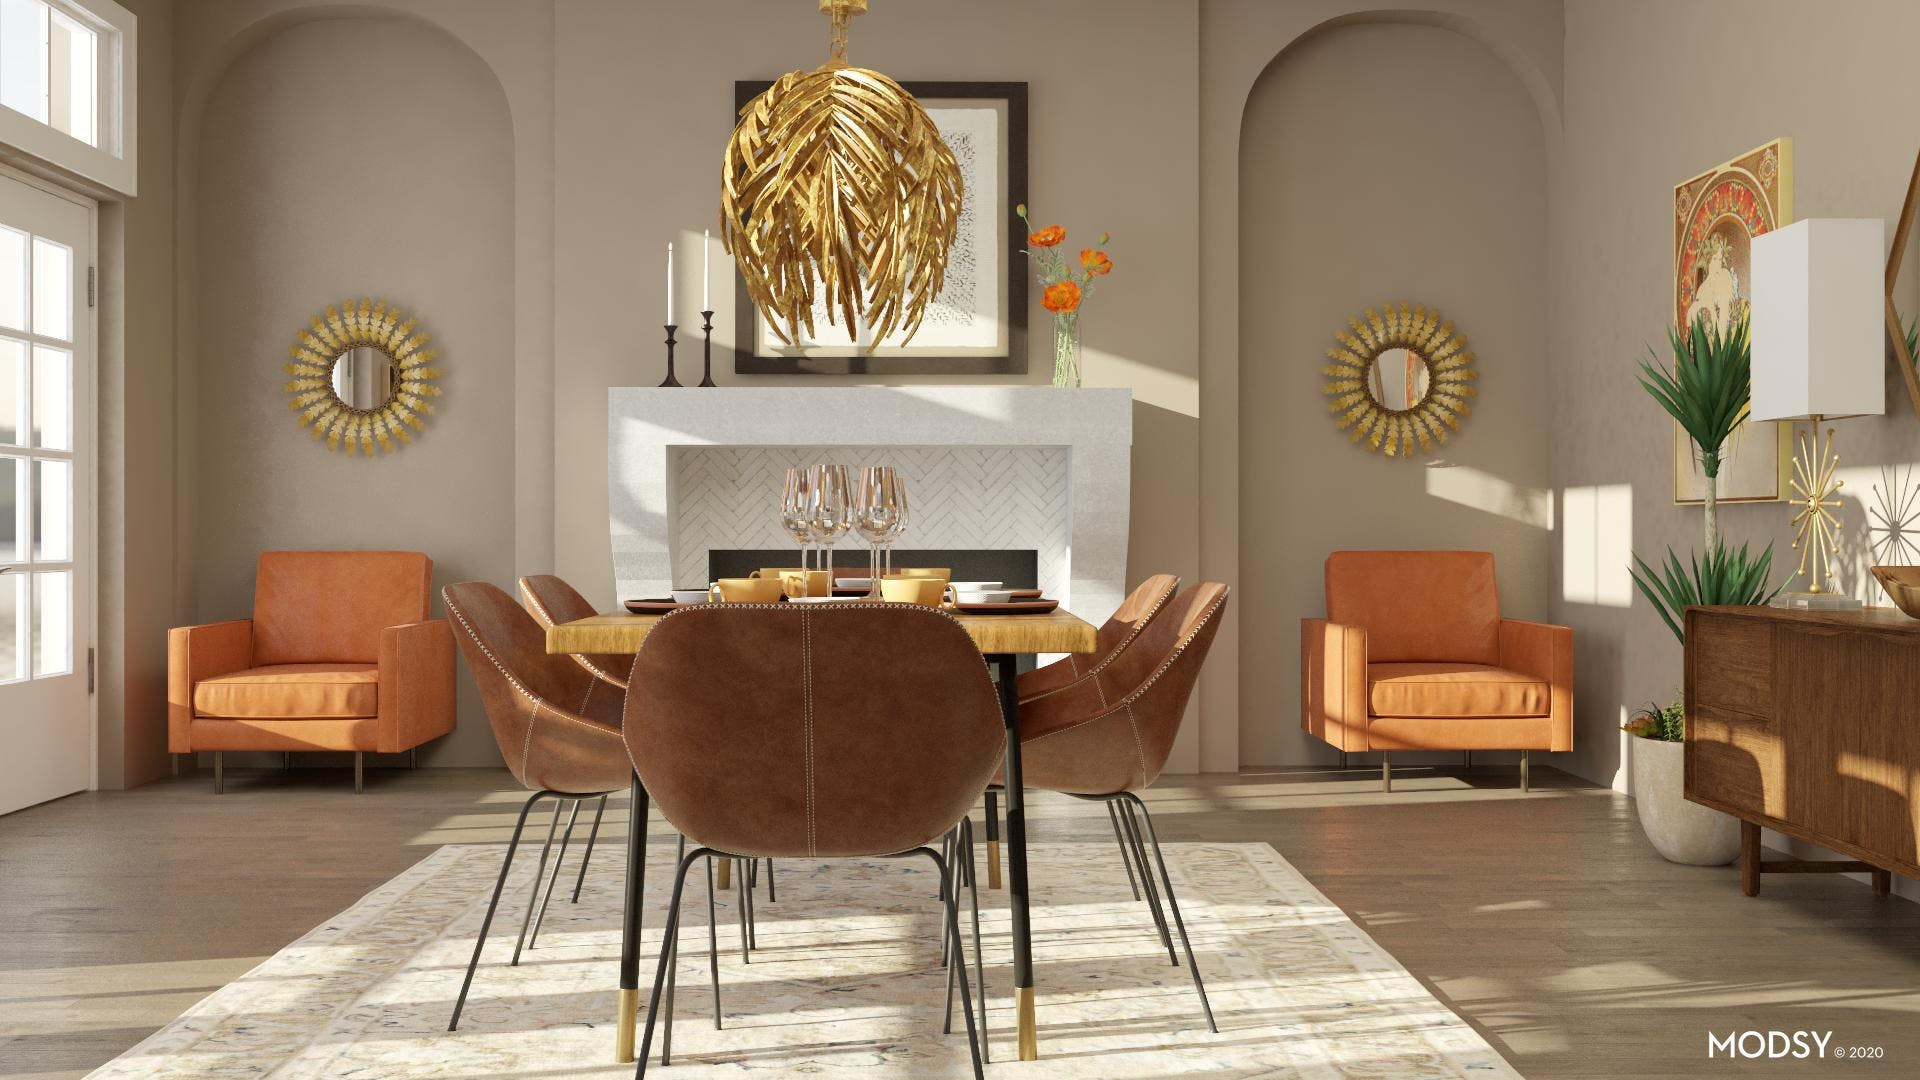 Cozy Accent Chairs in Mid-Century Dining Room